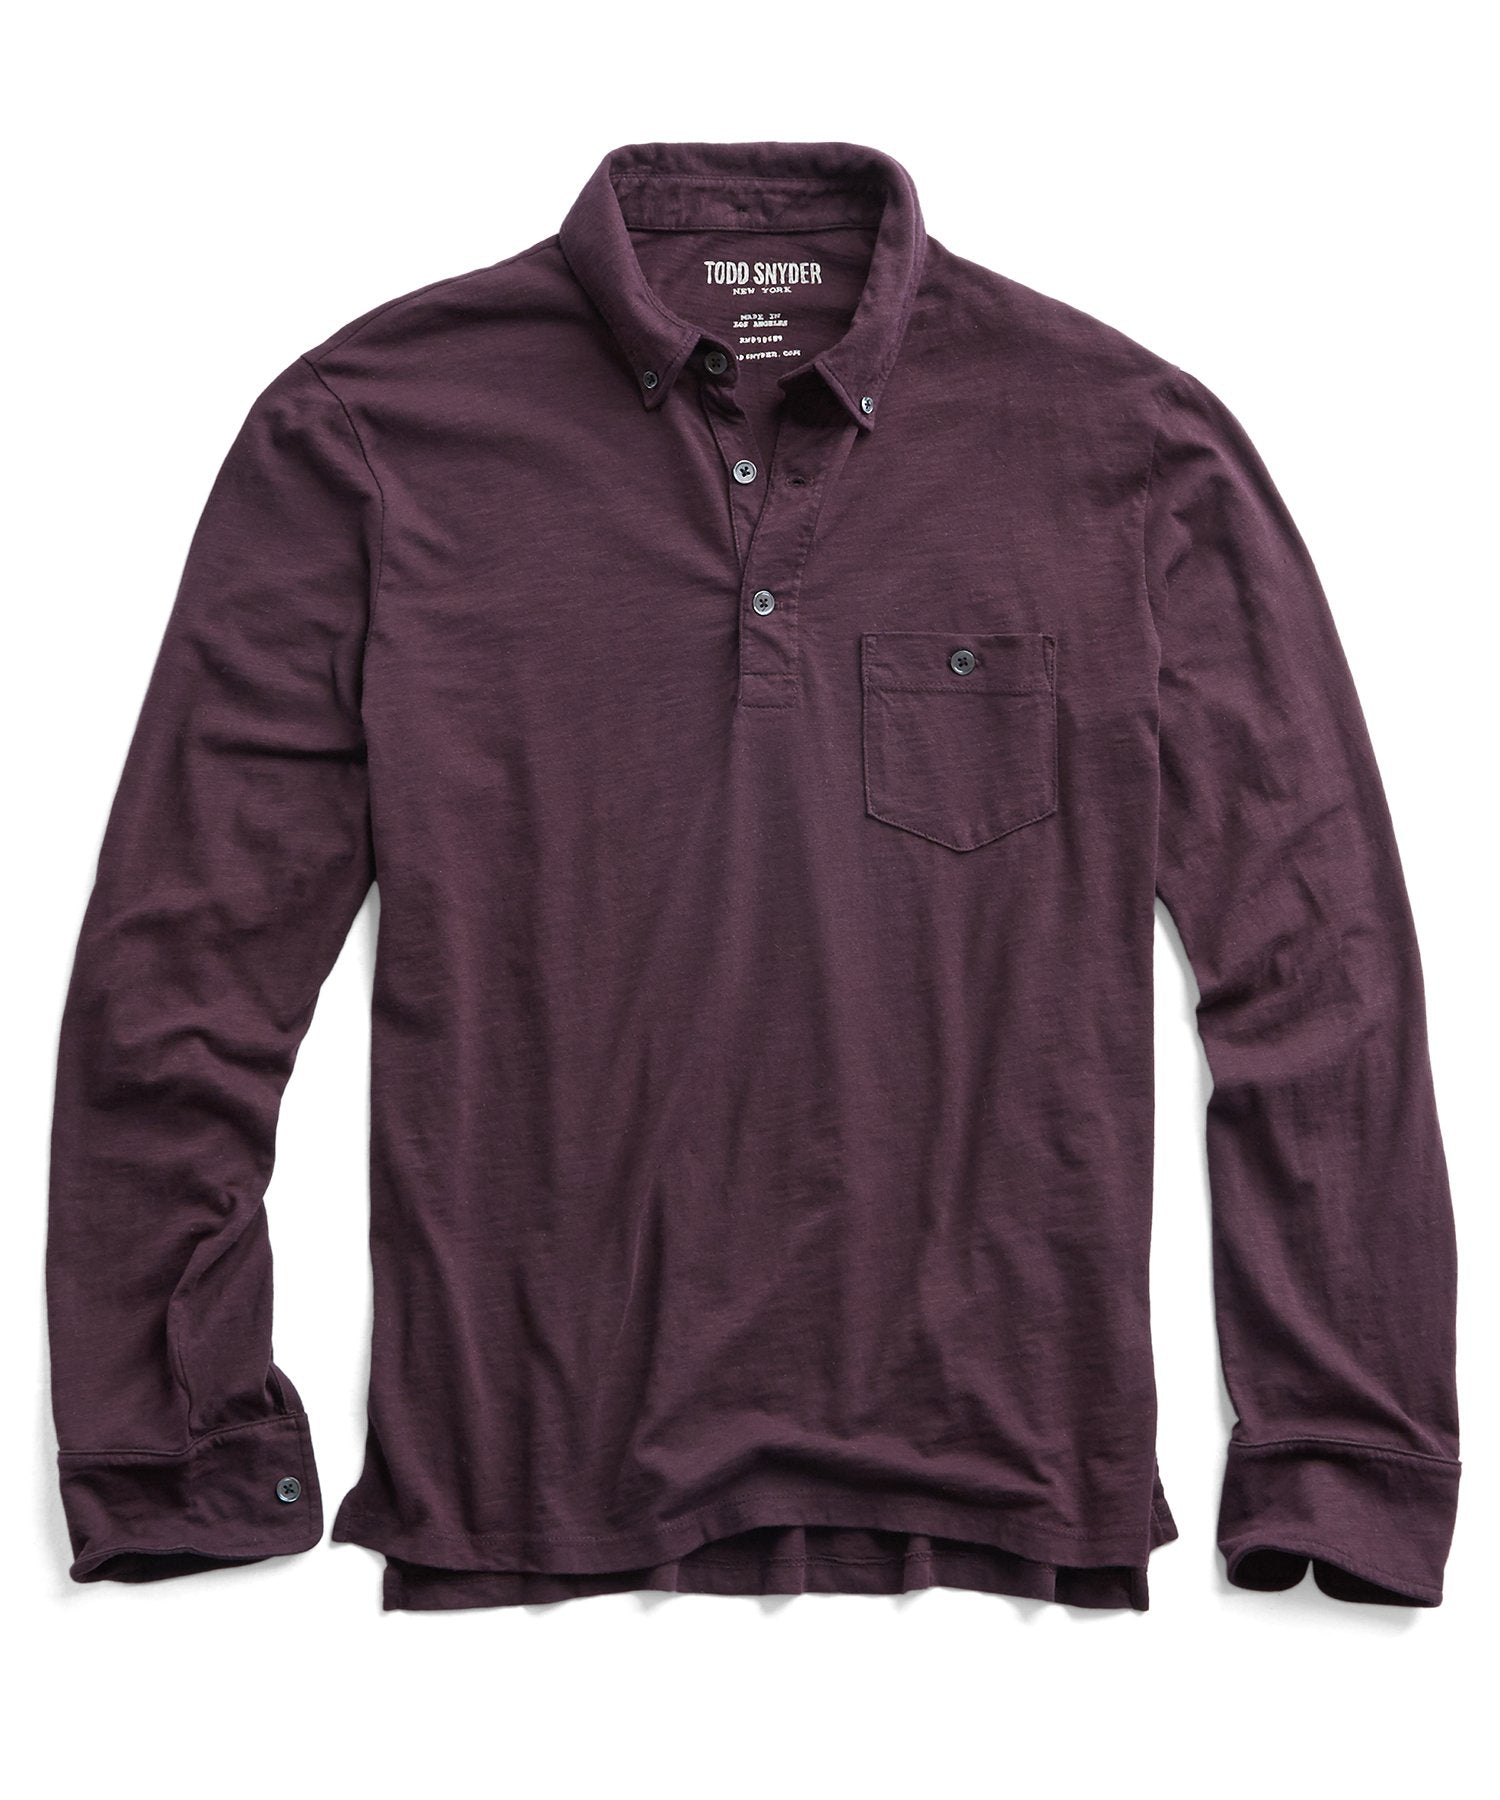 Made in L.A. Slub Jersey Long Sleeve Polo in Burgundy